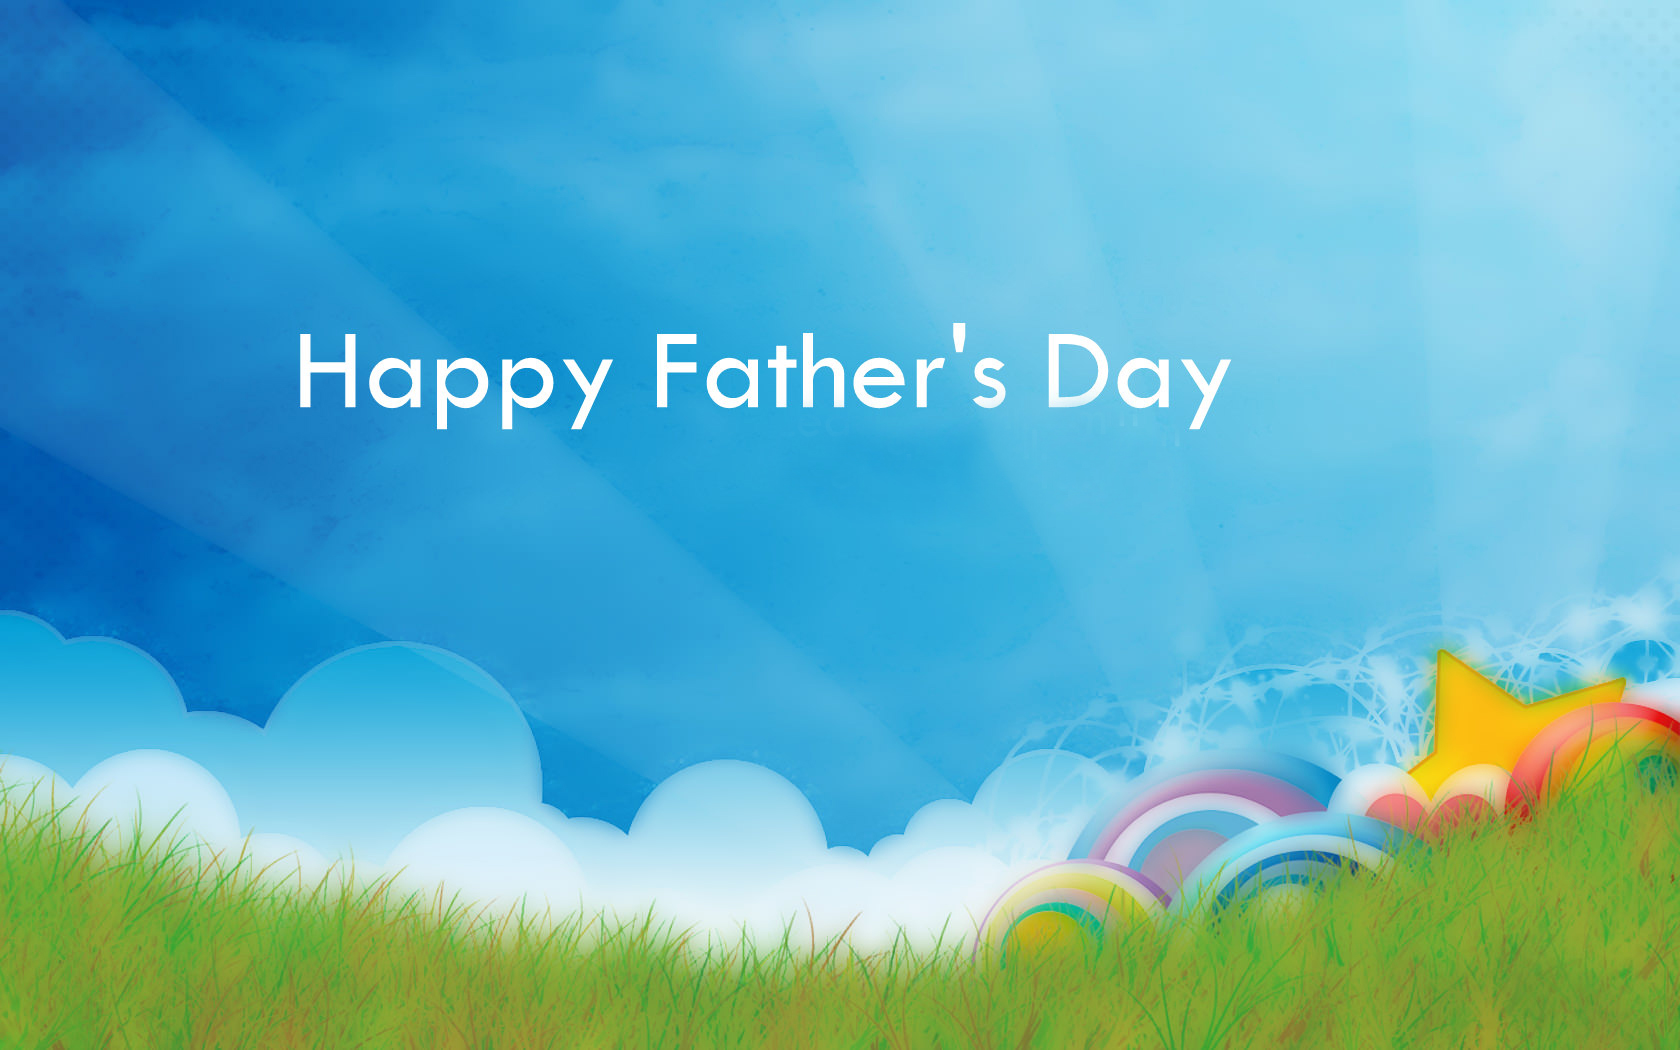 Happy-Fathers-Day-Free-HD-Wallpaper